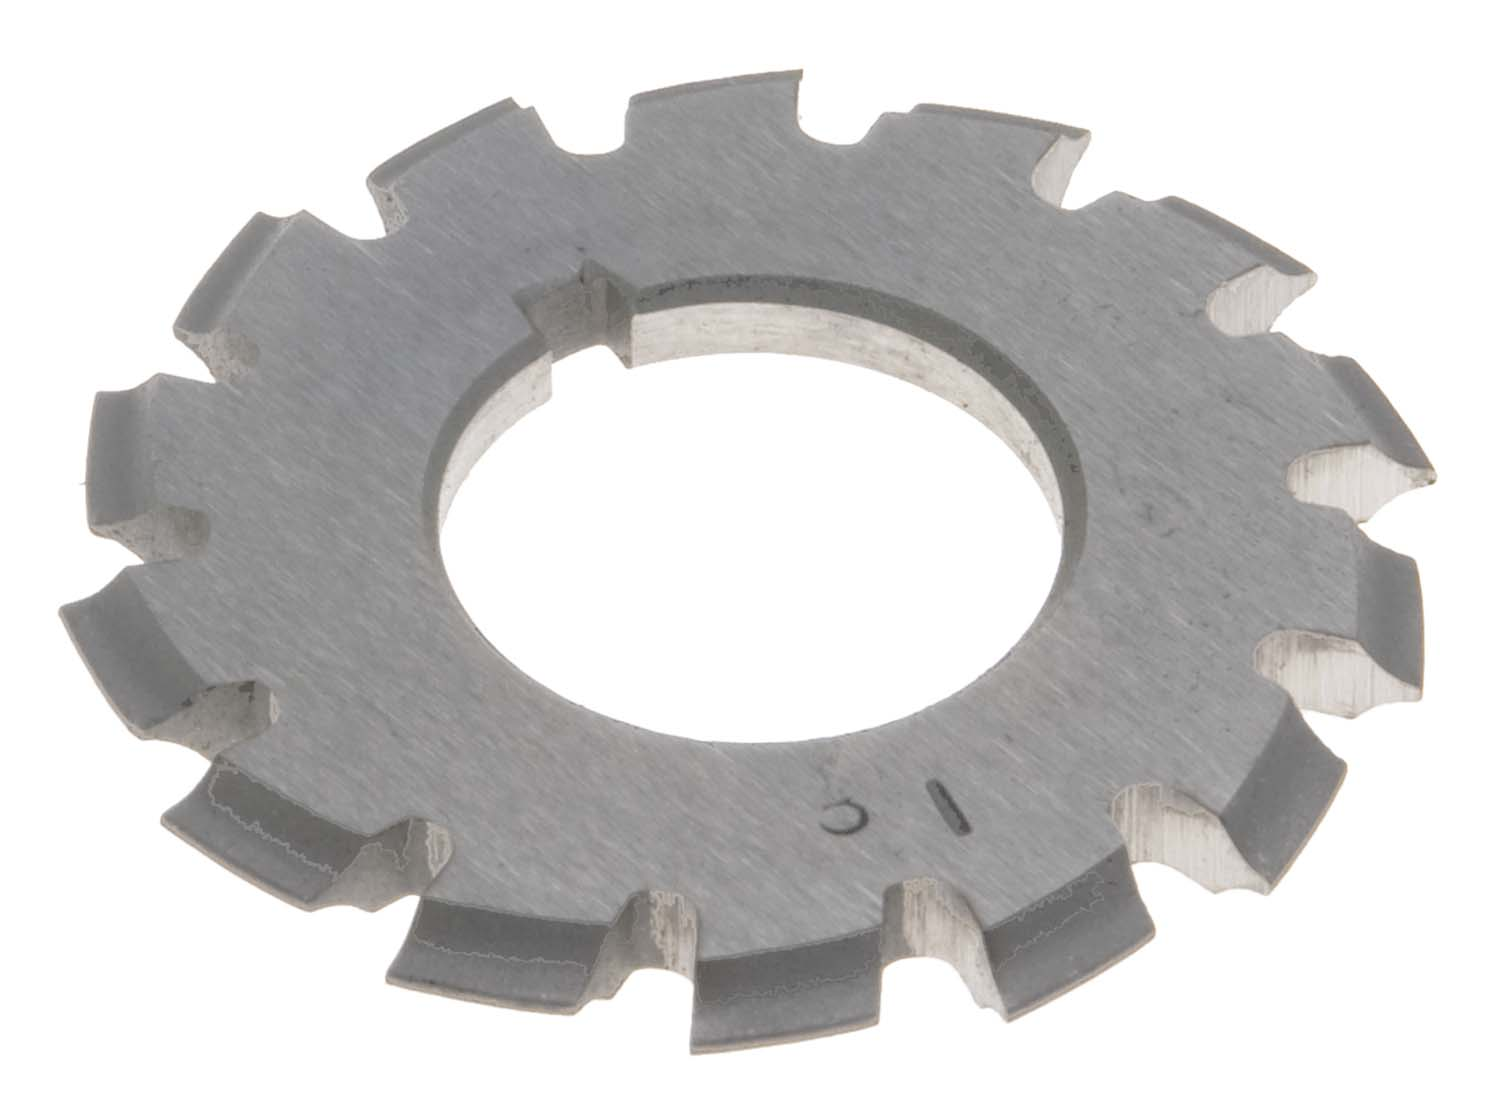 32 Diametral Pitch # 7   Involute Gear Cutter - 7/8 ID - 14-1/2 Degree Pressure Angle